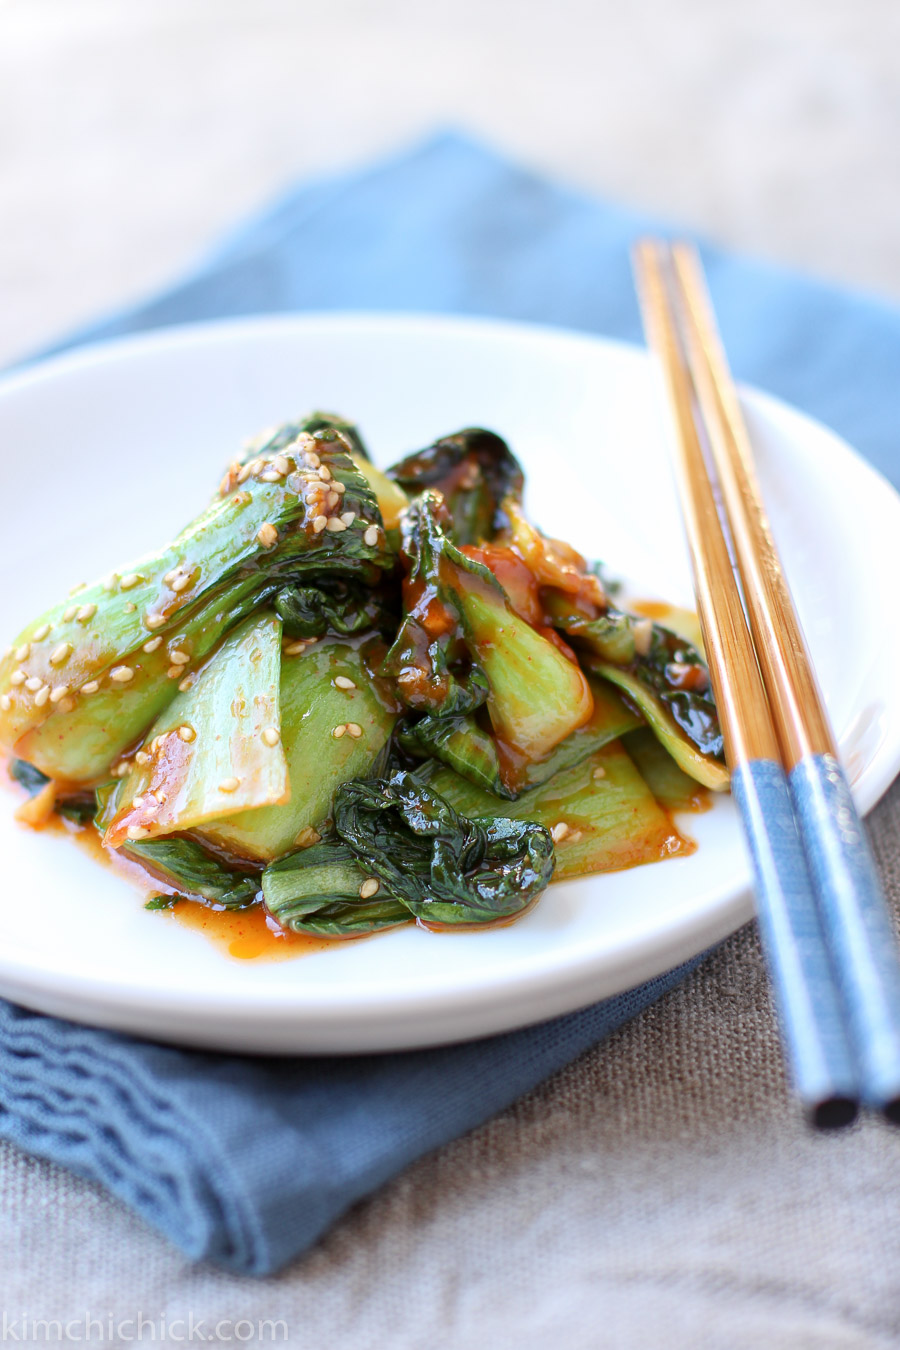 Korean-style bok choy is a quick and easy 10-minute veggie side dish that is hearty, healthy, and full of Korean flavors! |kimchichick.com